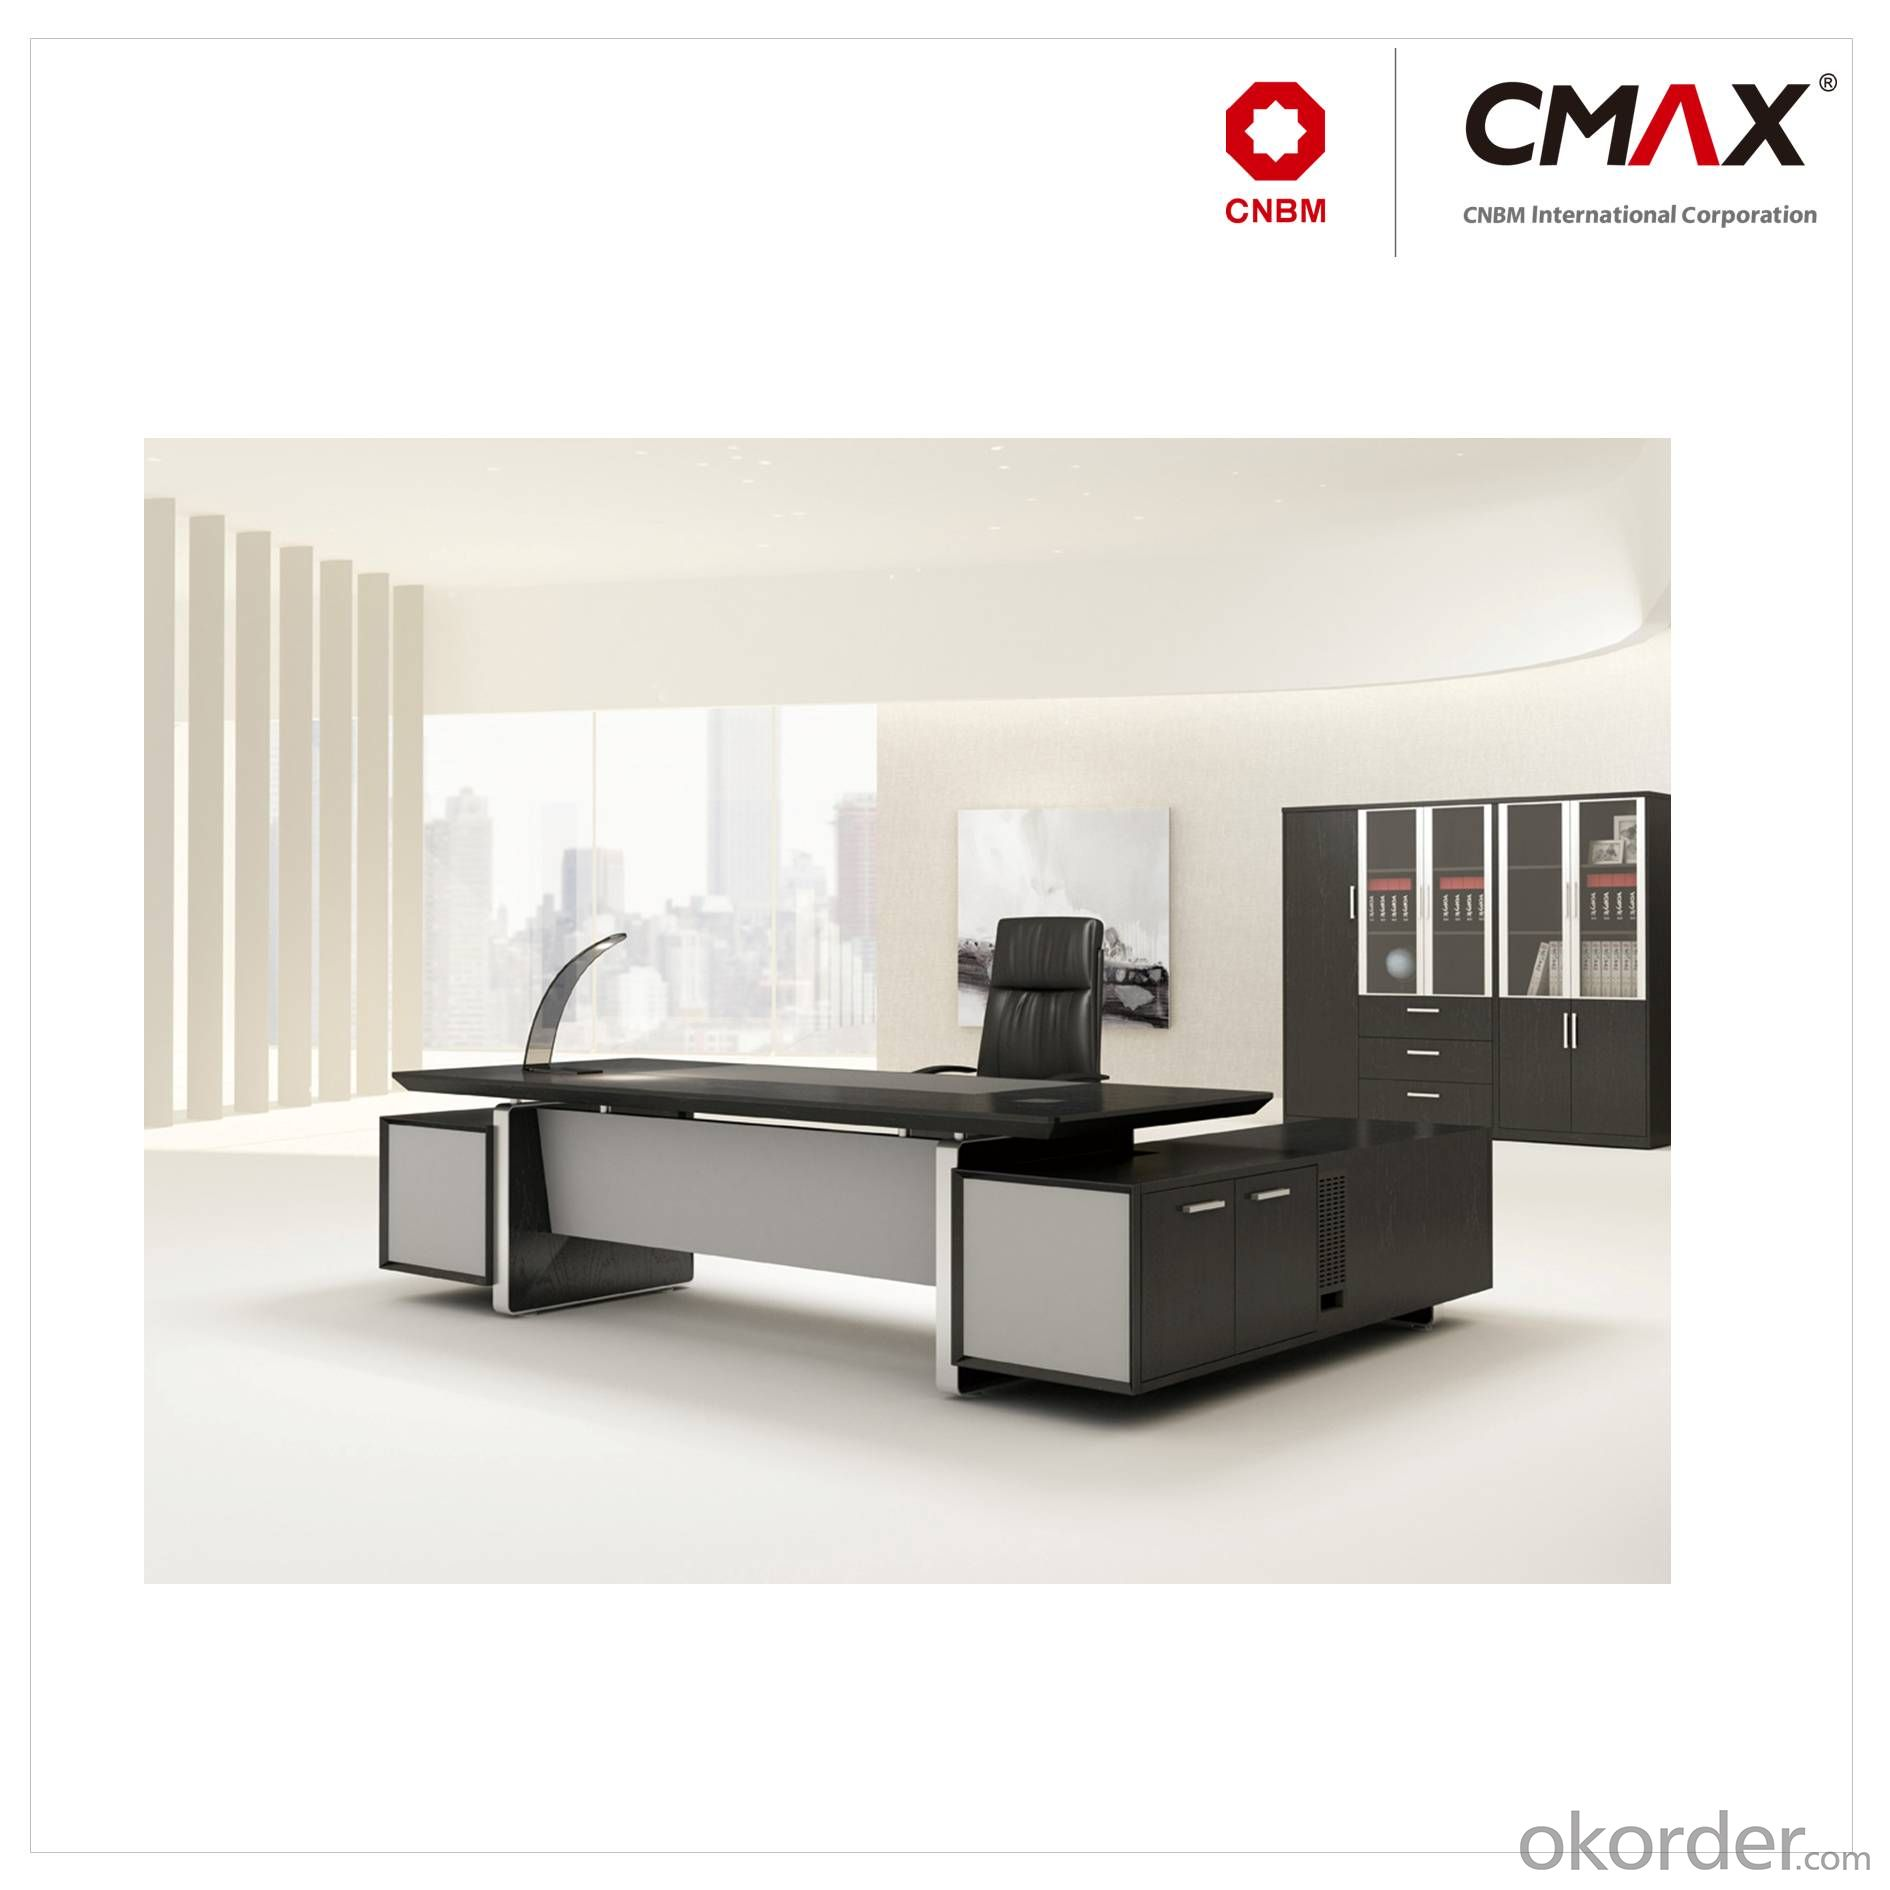 Executive Office Table Big Boss Office Desk Cmax Ydk3108 Real Time Quotes Last Sale Prices Okorder Com